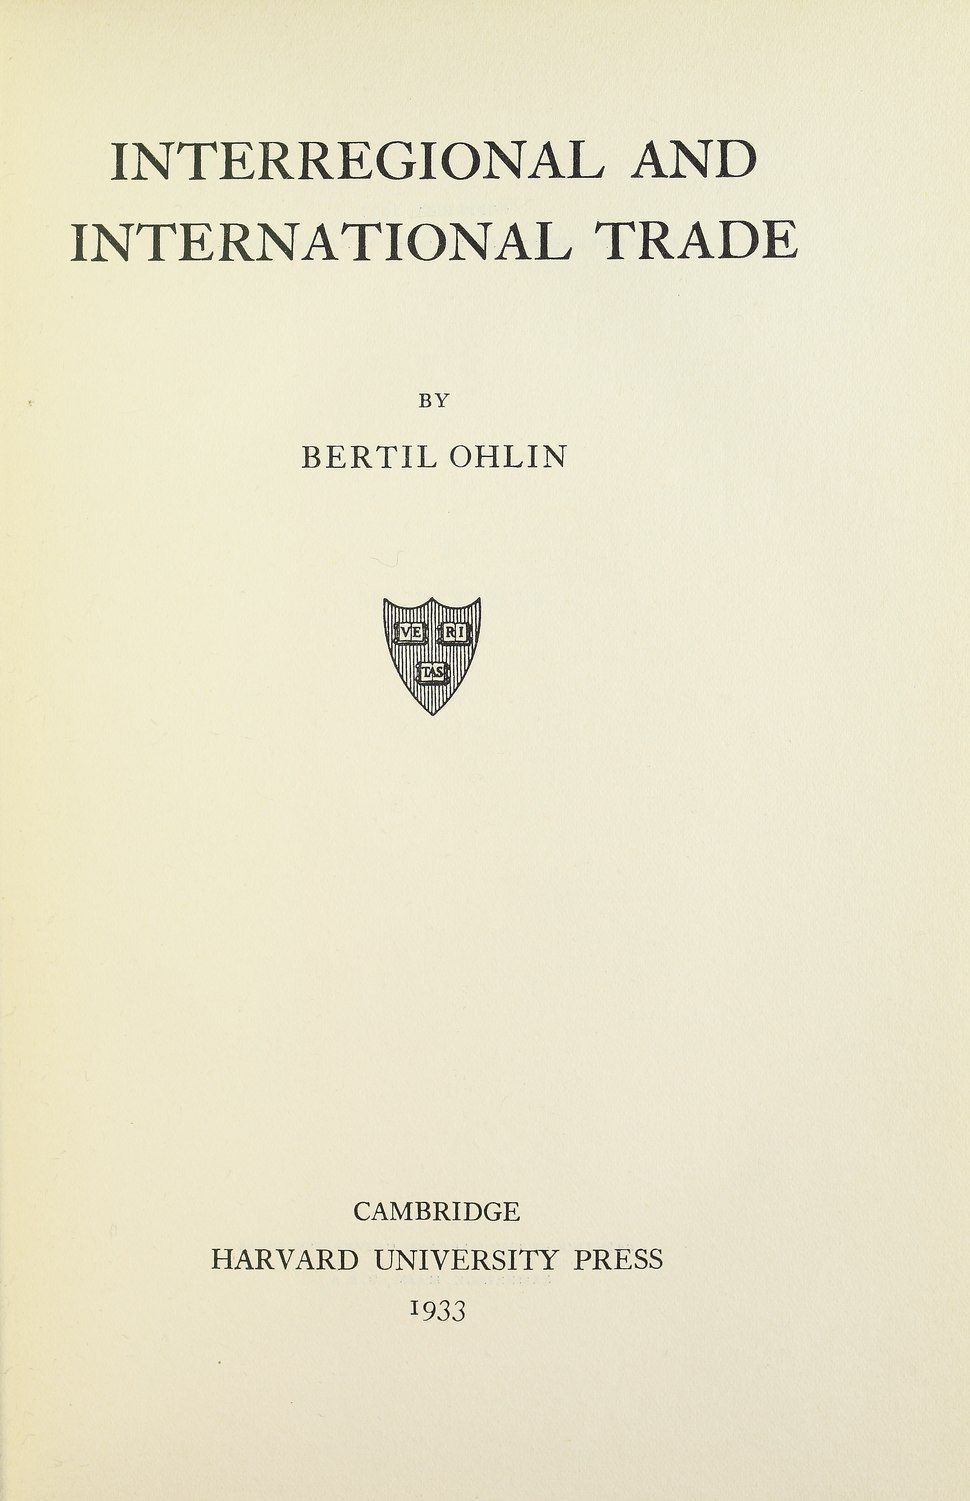 Ohlin - Interregional and international trade, 1933 - 5175280